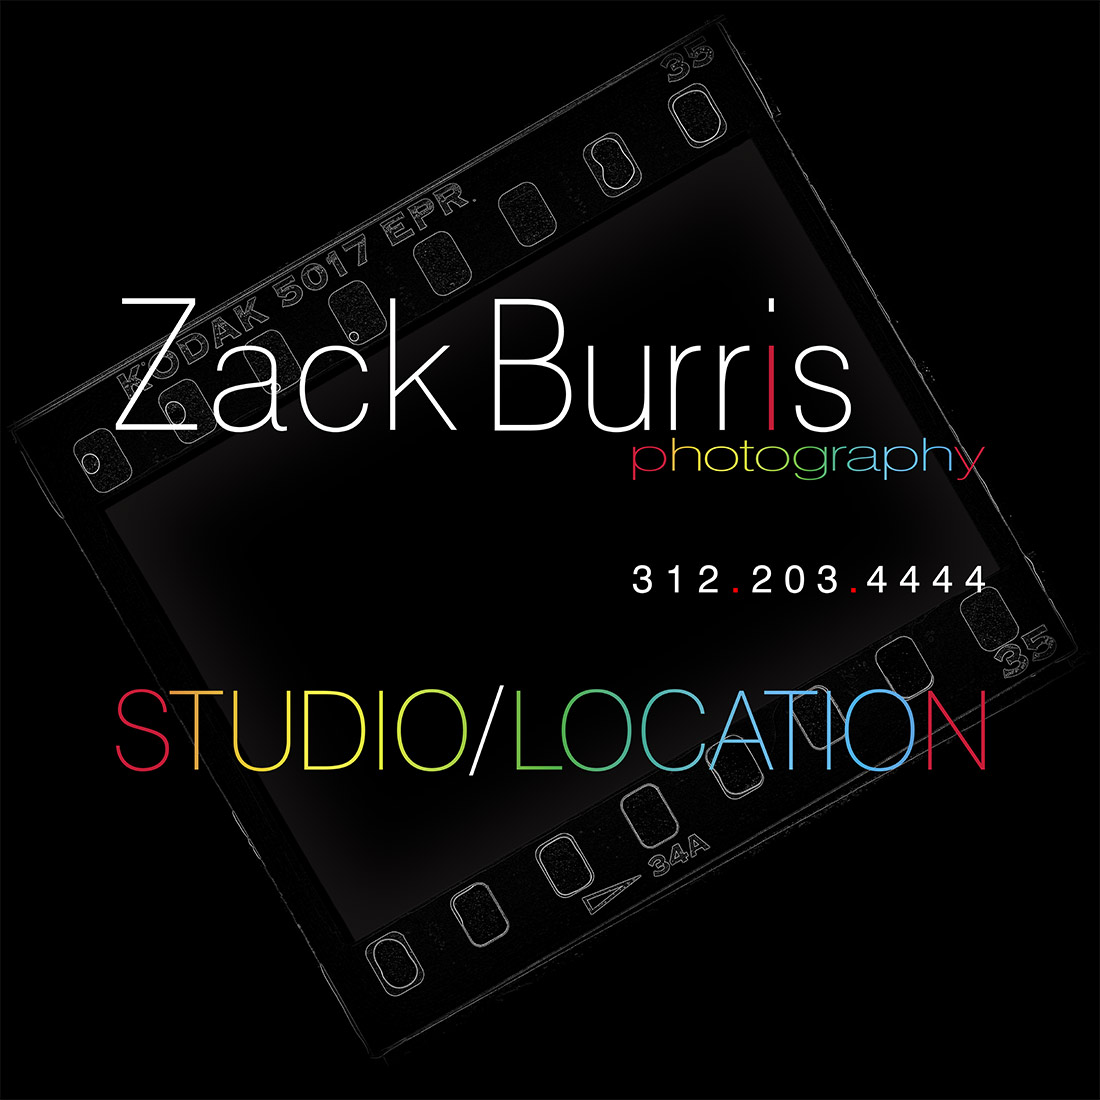 EXPERIMENTAL-PHOTOGRAPHY-ZACK-BURRIS-CHICAGO-ZB-LOGO-35mm-FRAME-INTRO-2